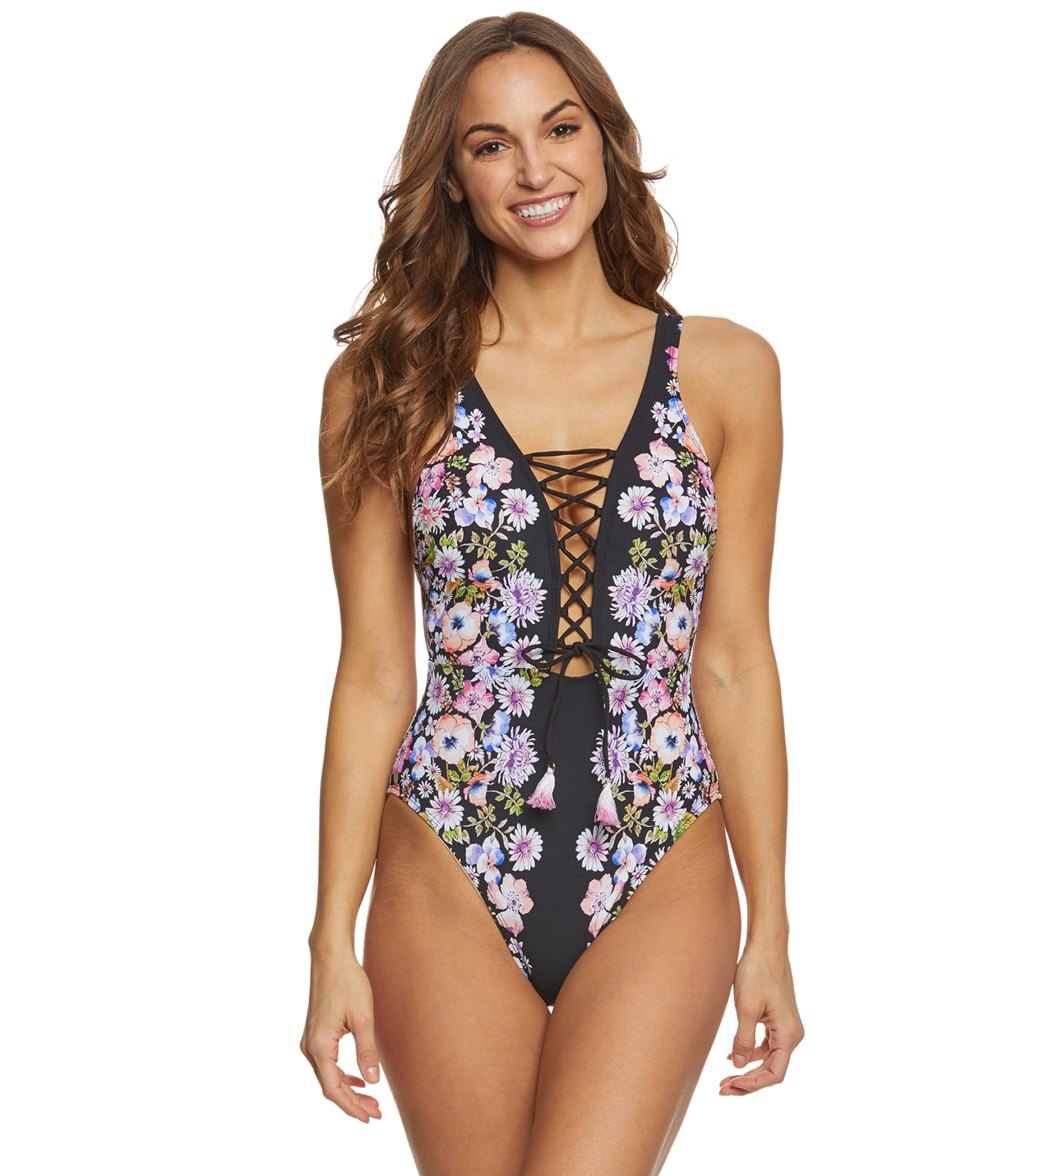 9e87339297f7f Kenneth Cole Reaction Dark Romance Lace Up Plunge One Piece Swimsuit at  SwimOutlet.com - Free Shipping